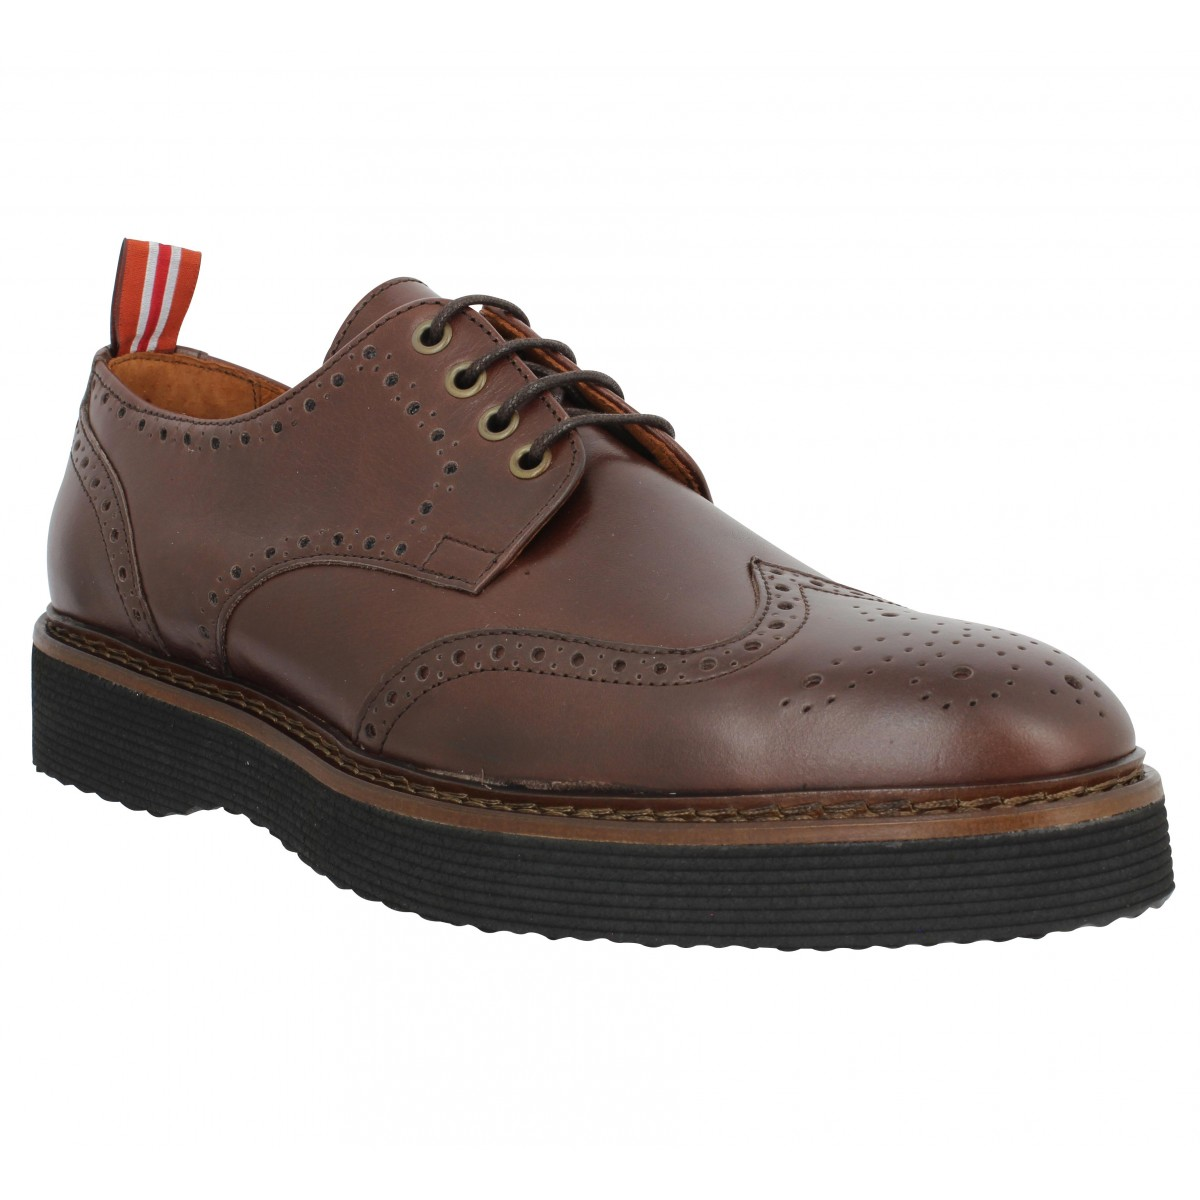 Chaussures à lacets SCHMOOVE Roma Perfo cuir Homme Marron